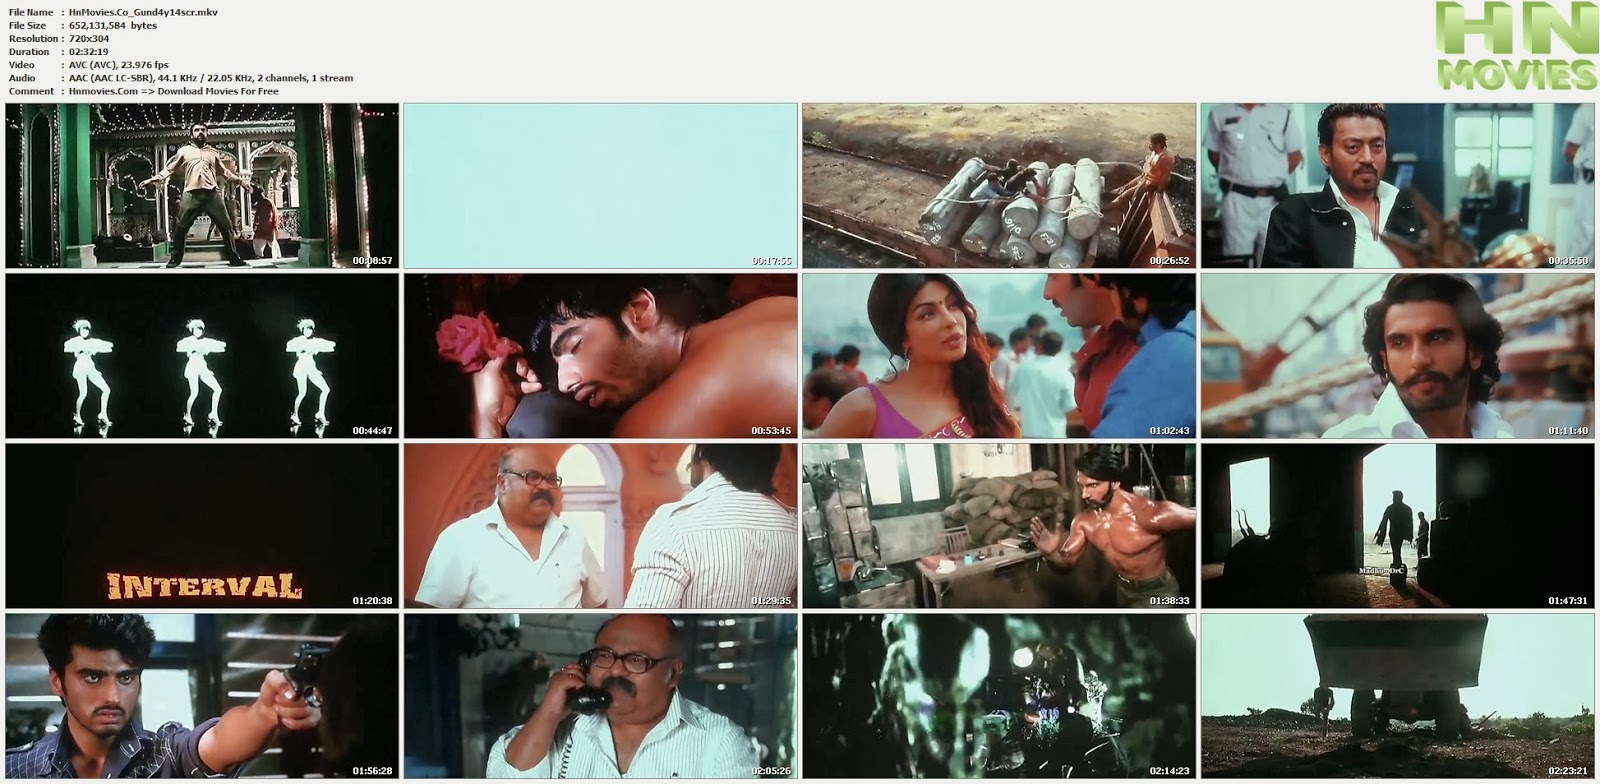 movie screenshot of Gunday fdmovie.com